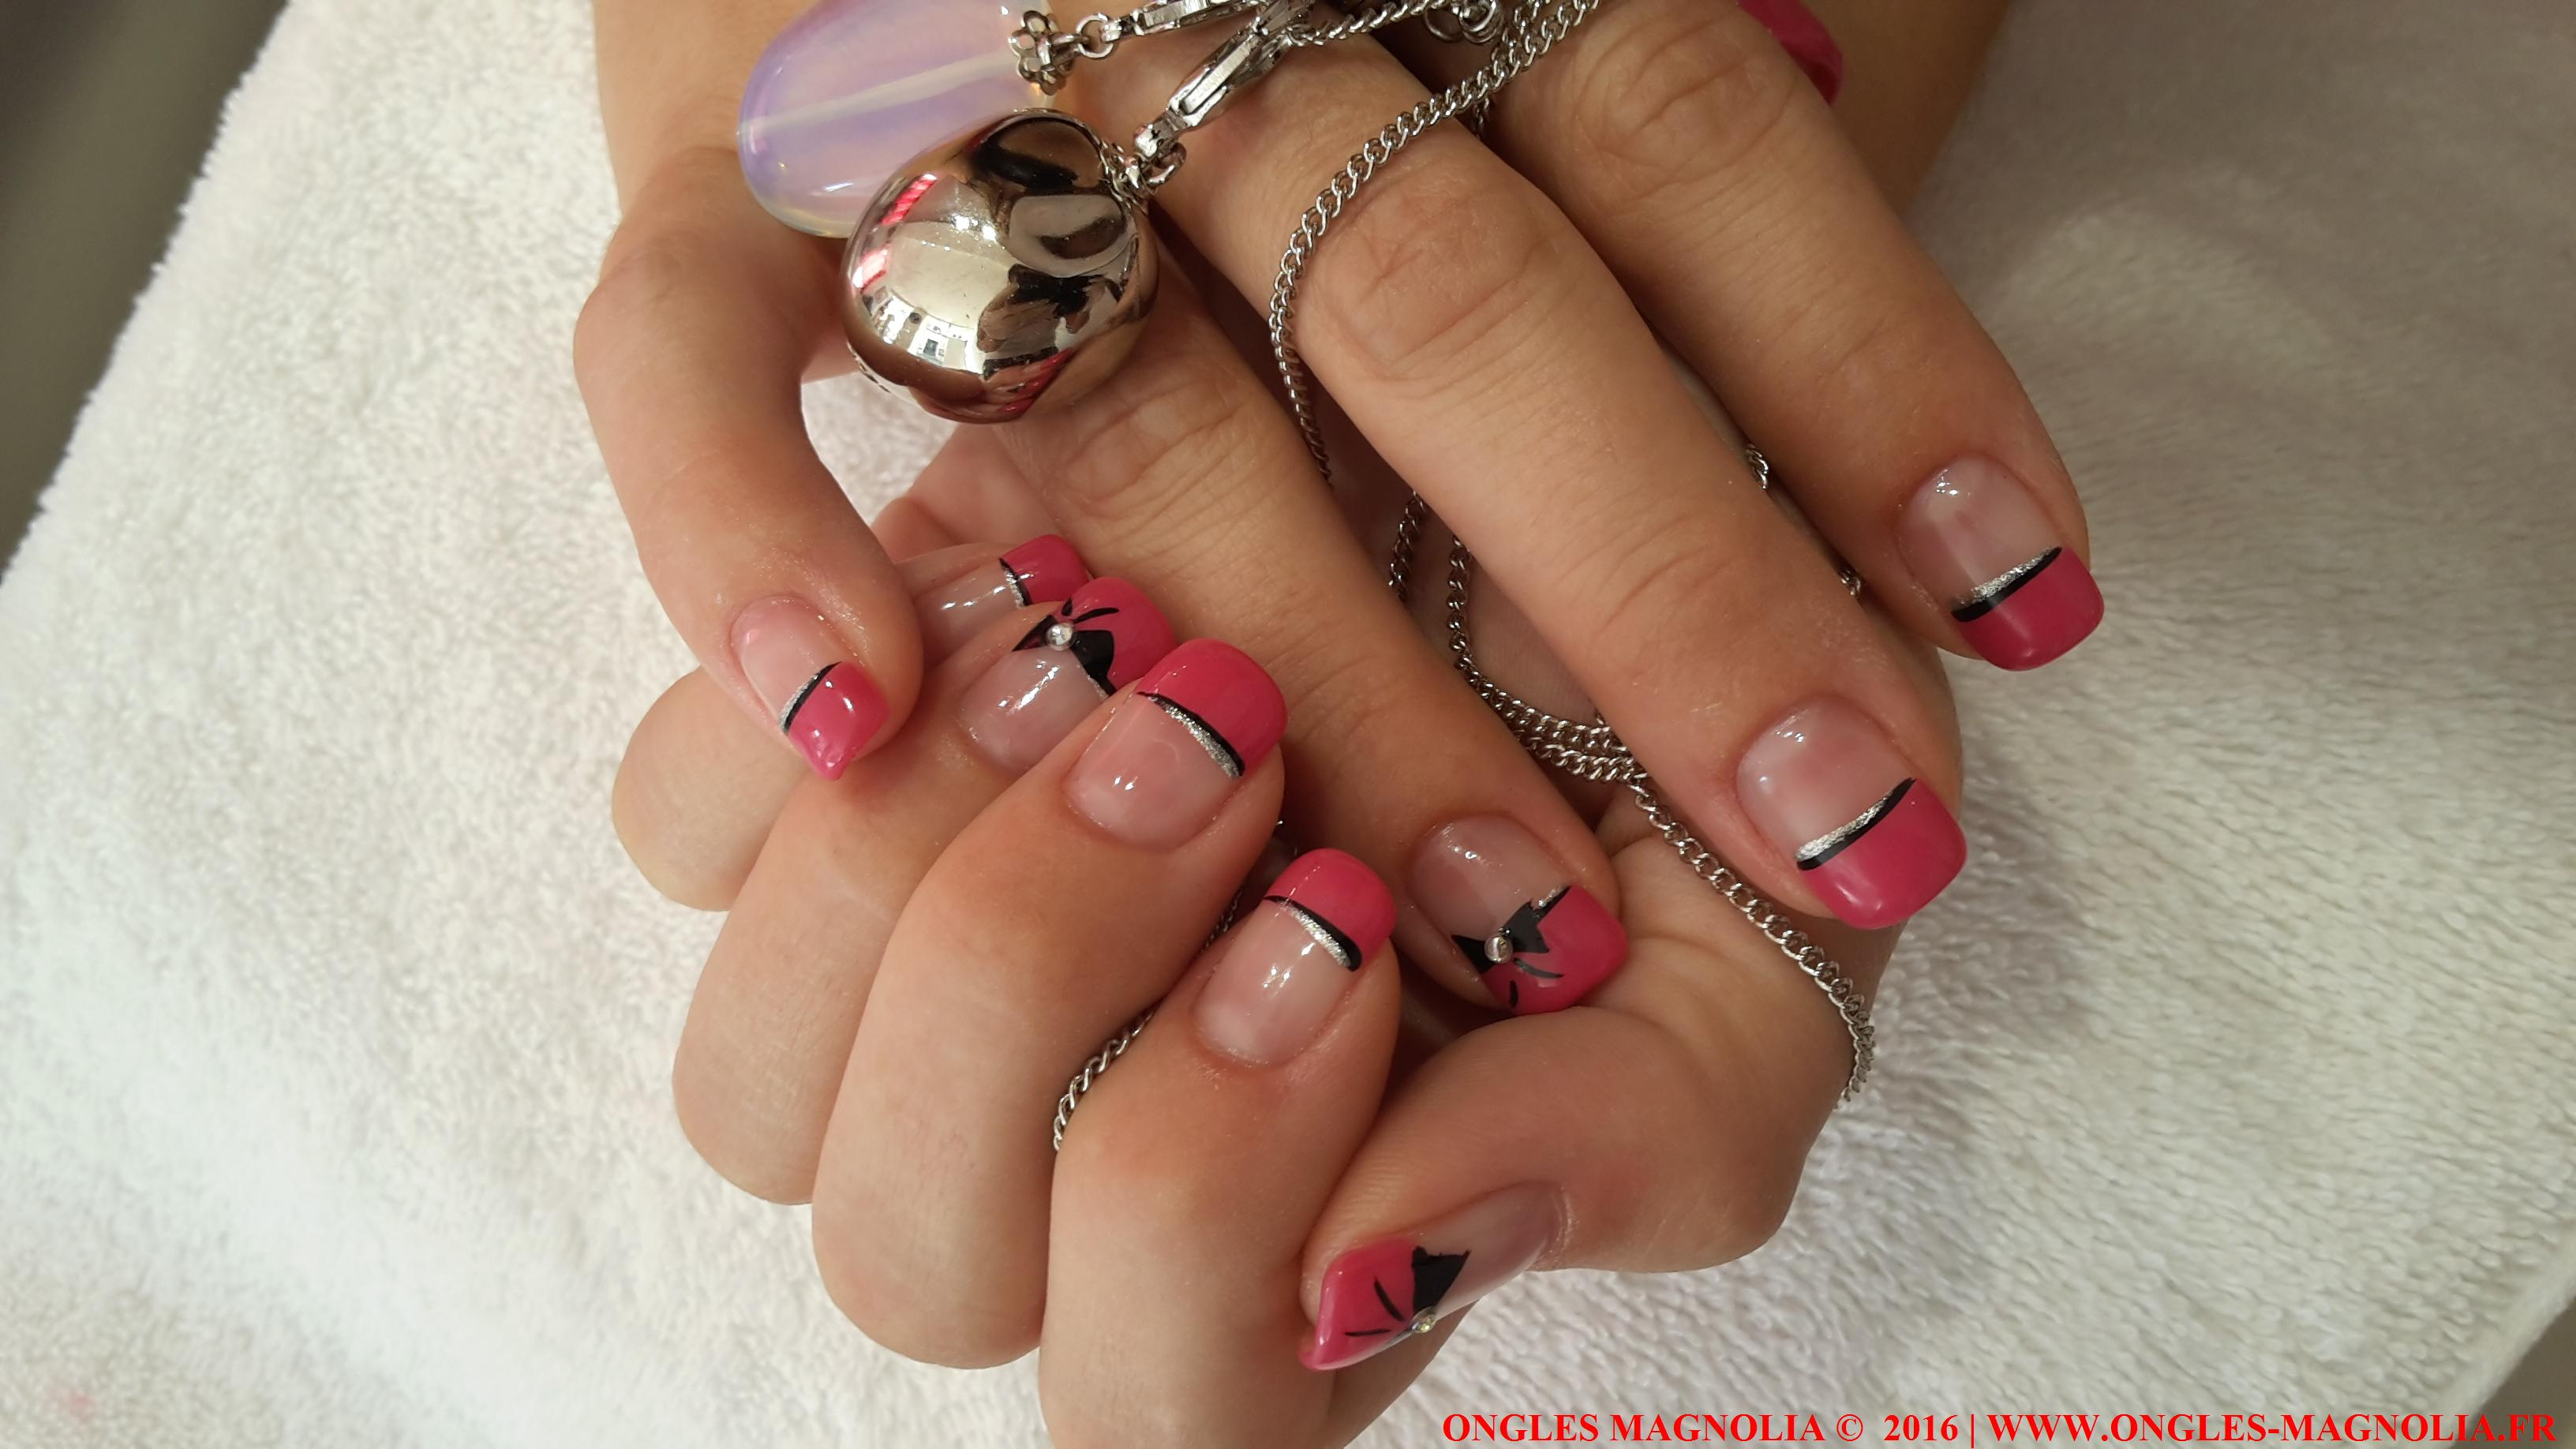 Pose-ongles-nail-art-neuville-sur-saone-lyon-ongles magnolia 032016